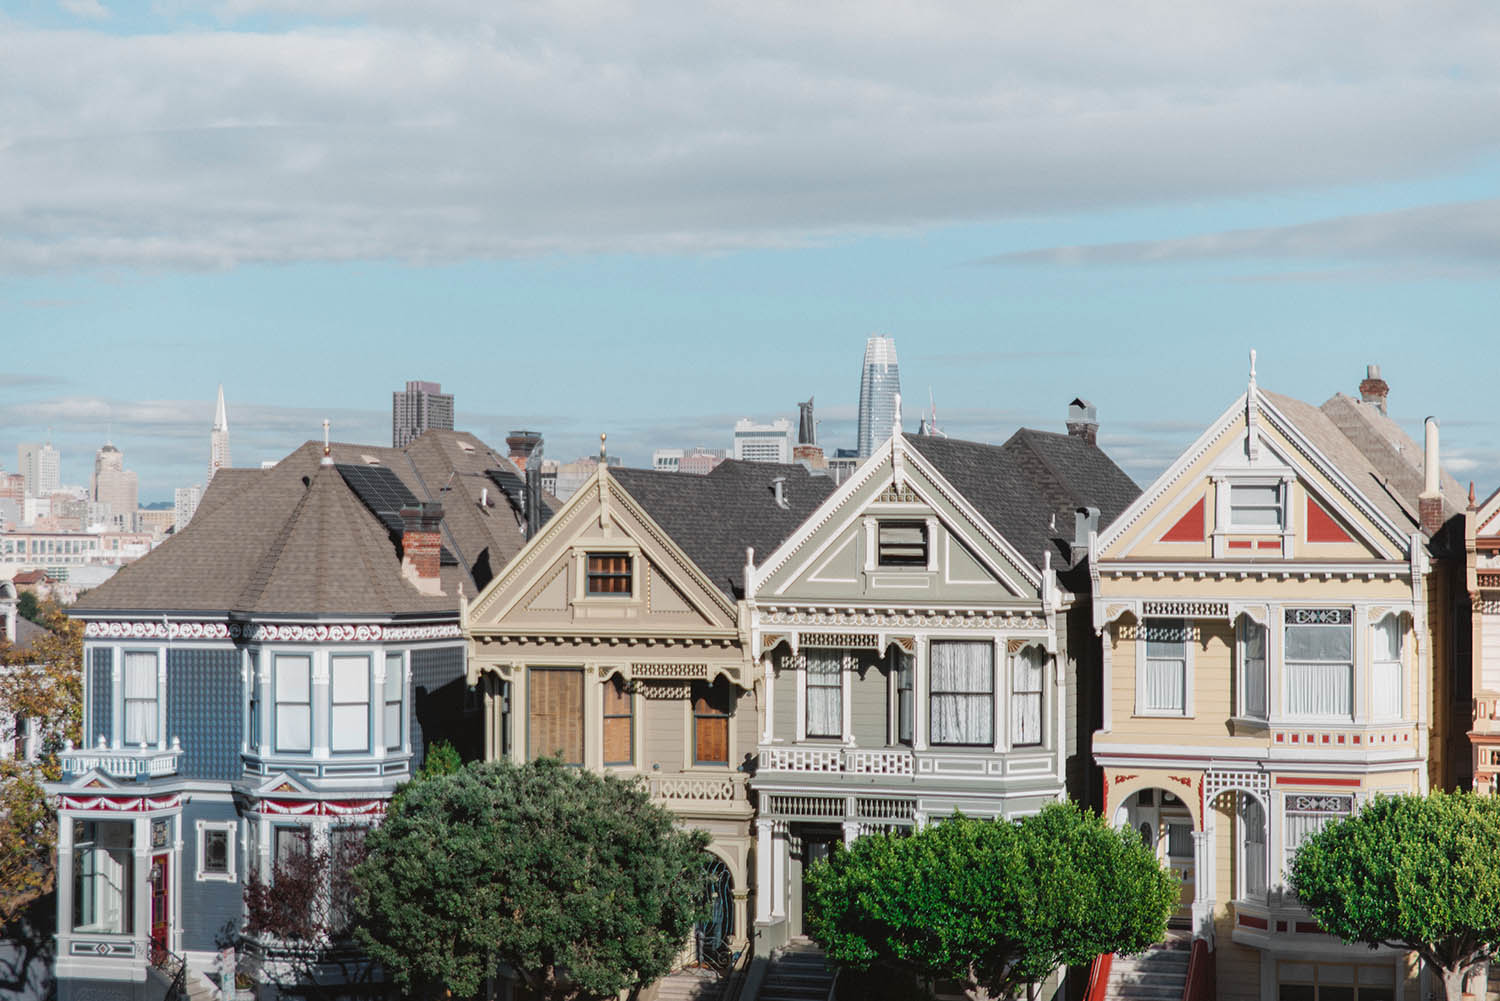 Painted Ladies Houses - Instagram-Worthy Spots in San Francisco